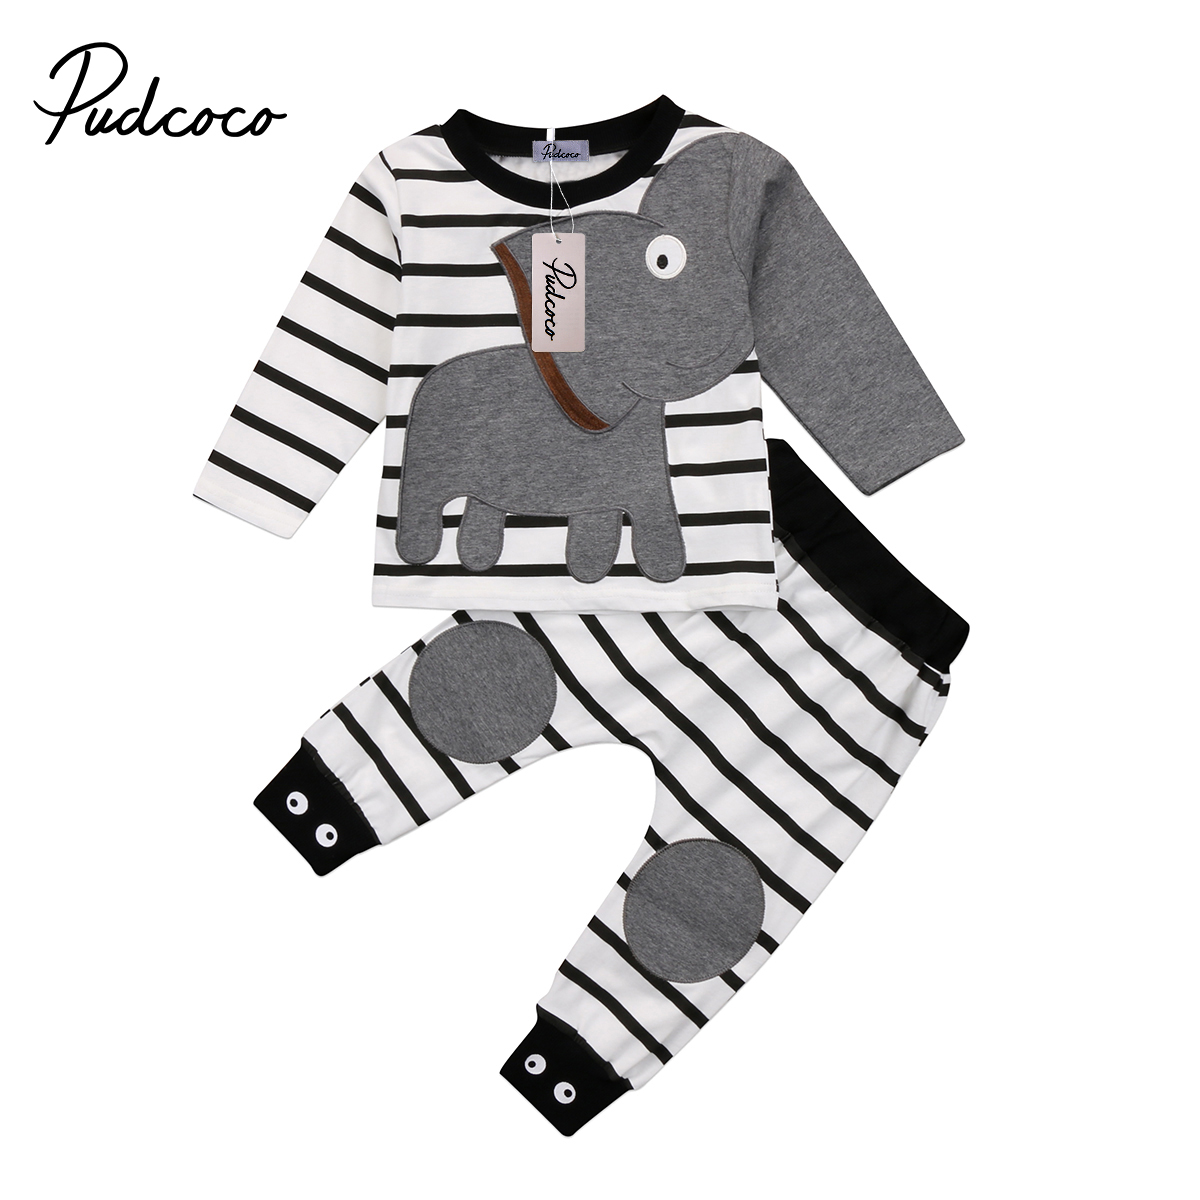 2018 Brand New Toddler Infant Child Kids Baby Boy Girl Tops Cartoon Elephant Shirt Pants 2Pcs Outfits Set Patchwork Clothes 1-6T baby boy cotton tops bodysuit infant pants toddler cartoon legging hat outfits newborn kids clothes set